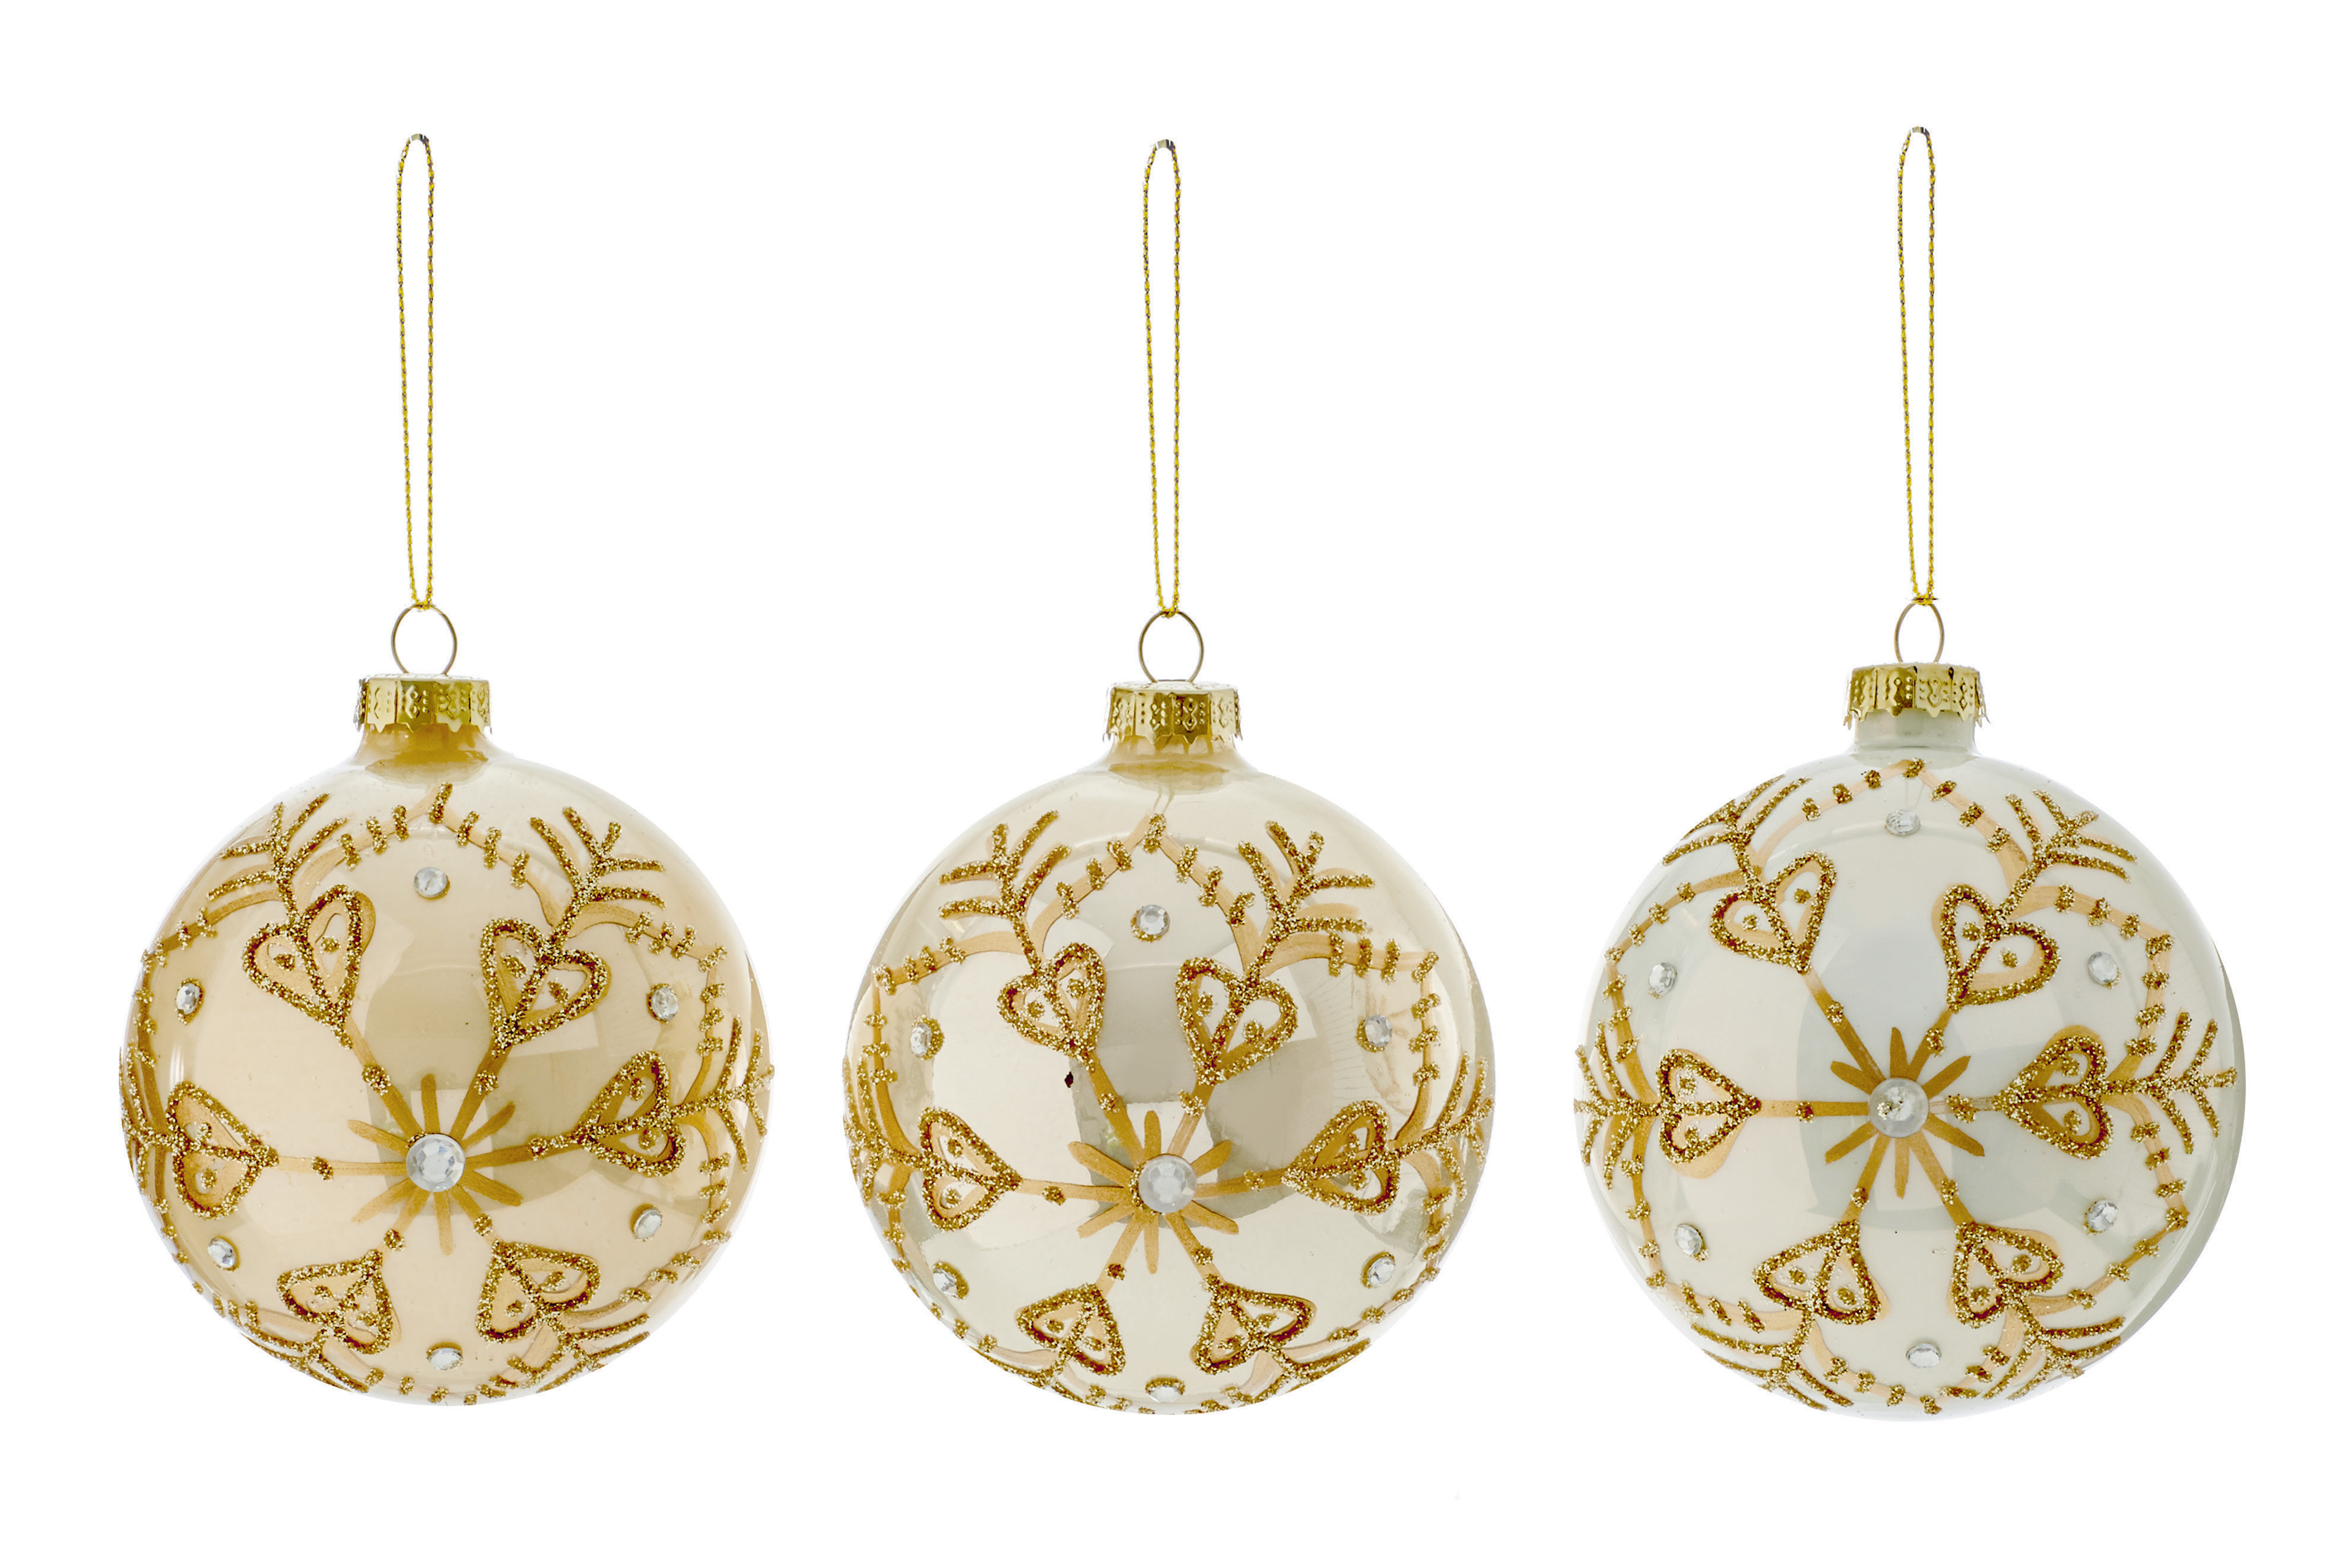 12 X Ivory Pearlised GLASS Christmas Tree Baubles With